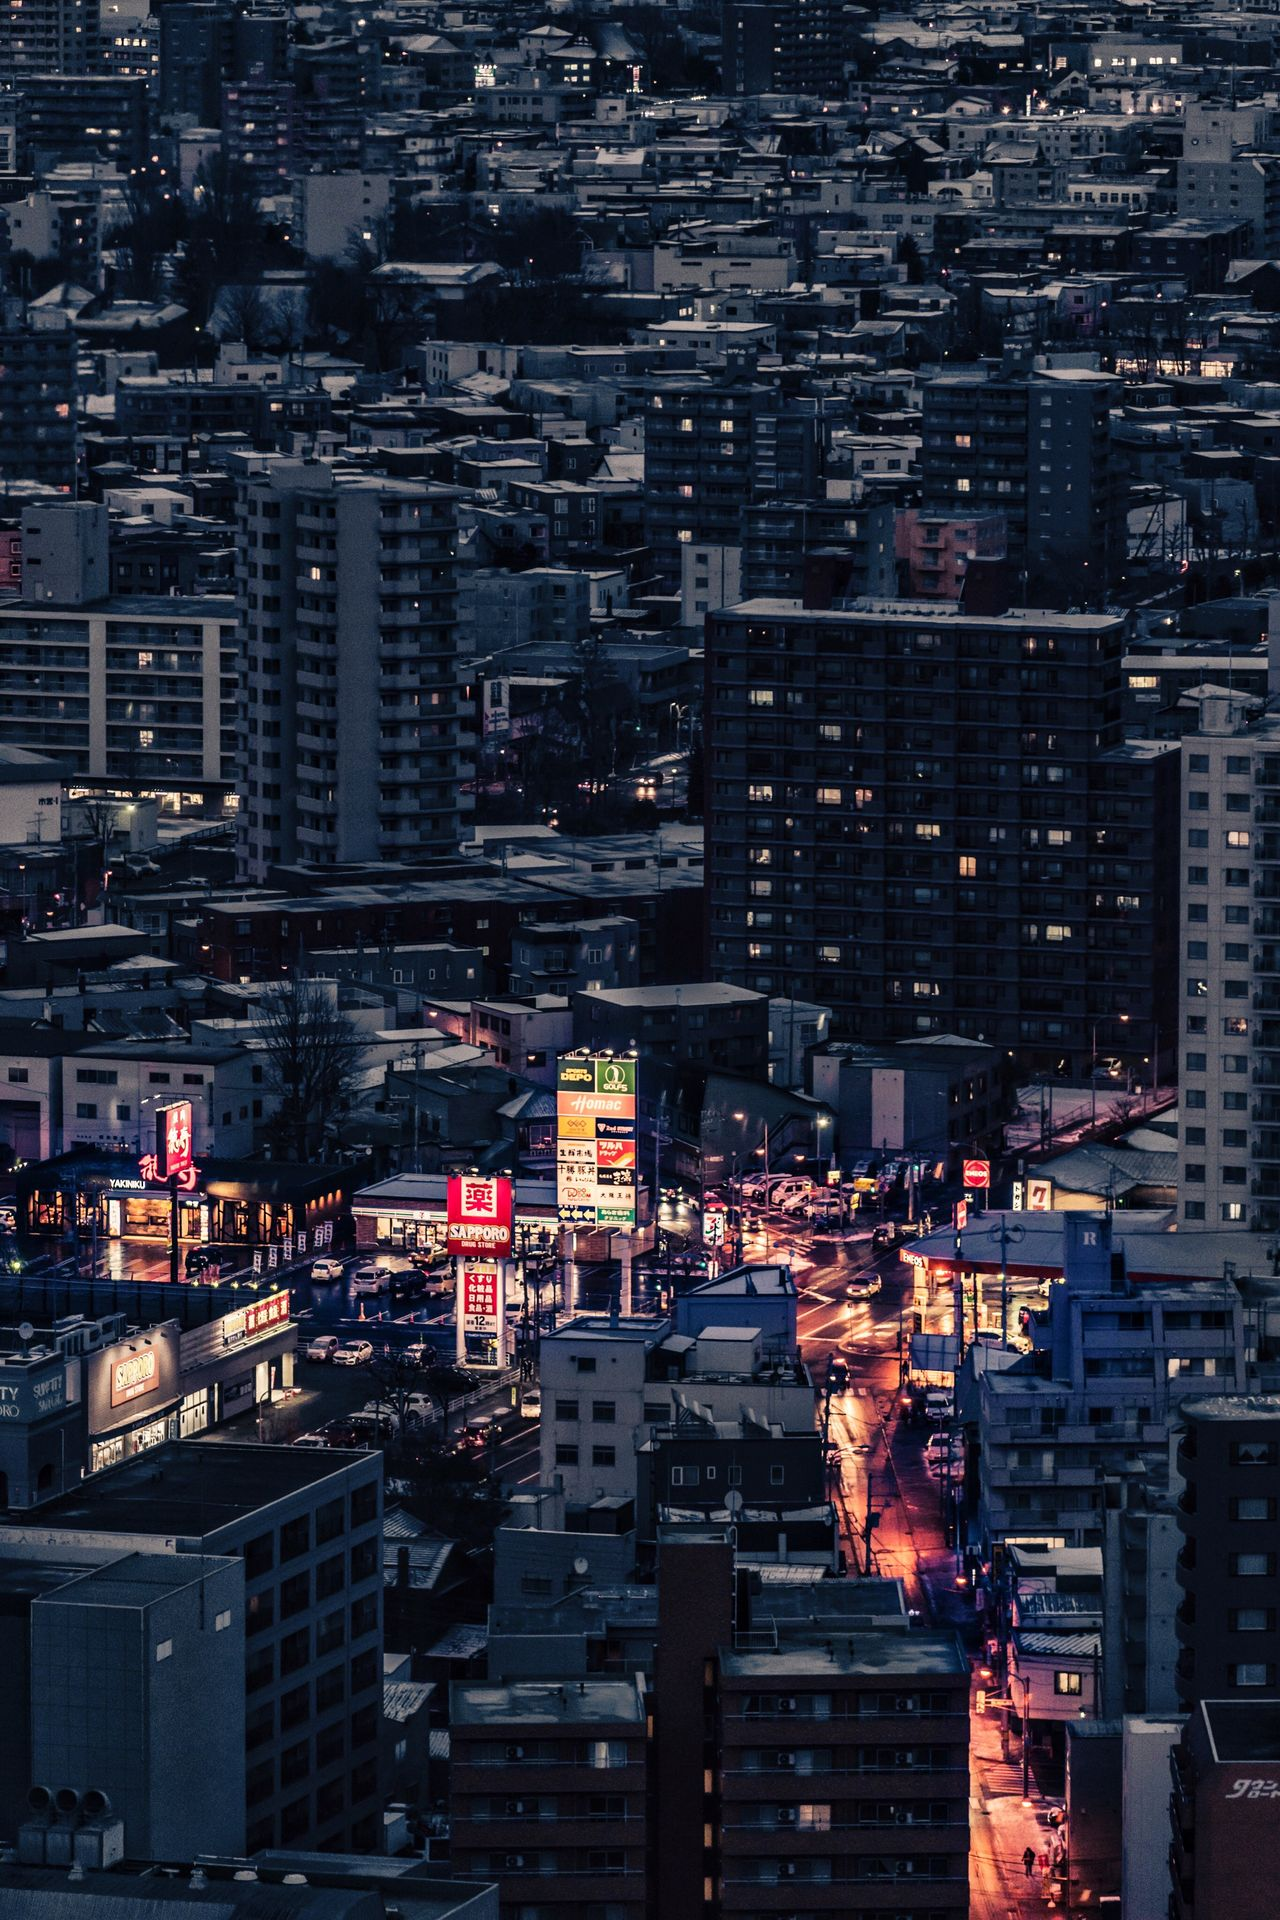 The night of Sapporo My Traveling Photography My Street Photography From My Point Of View City Cityscape Building Exterior Travel Destinations Architecture Skyscraper Crowded City Life Aerial View Tower Capture The Moment Night Photography Light And Shadow Skyline